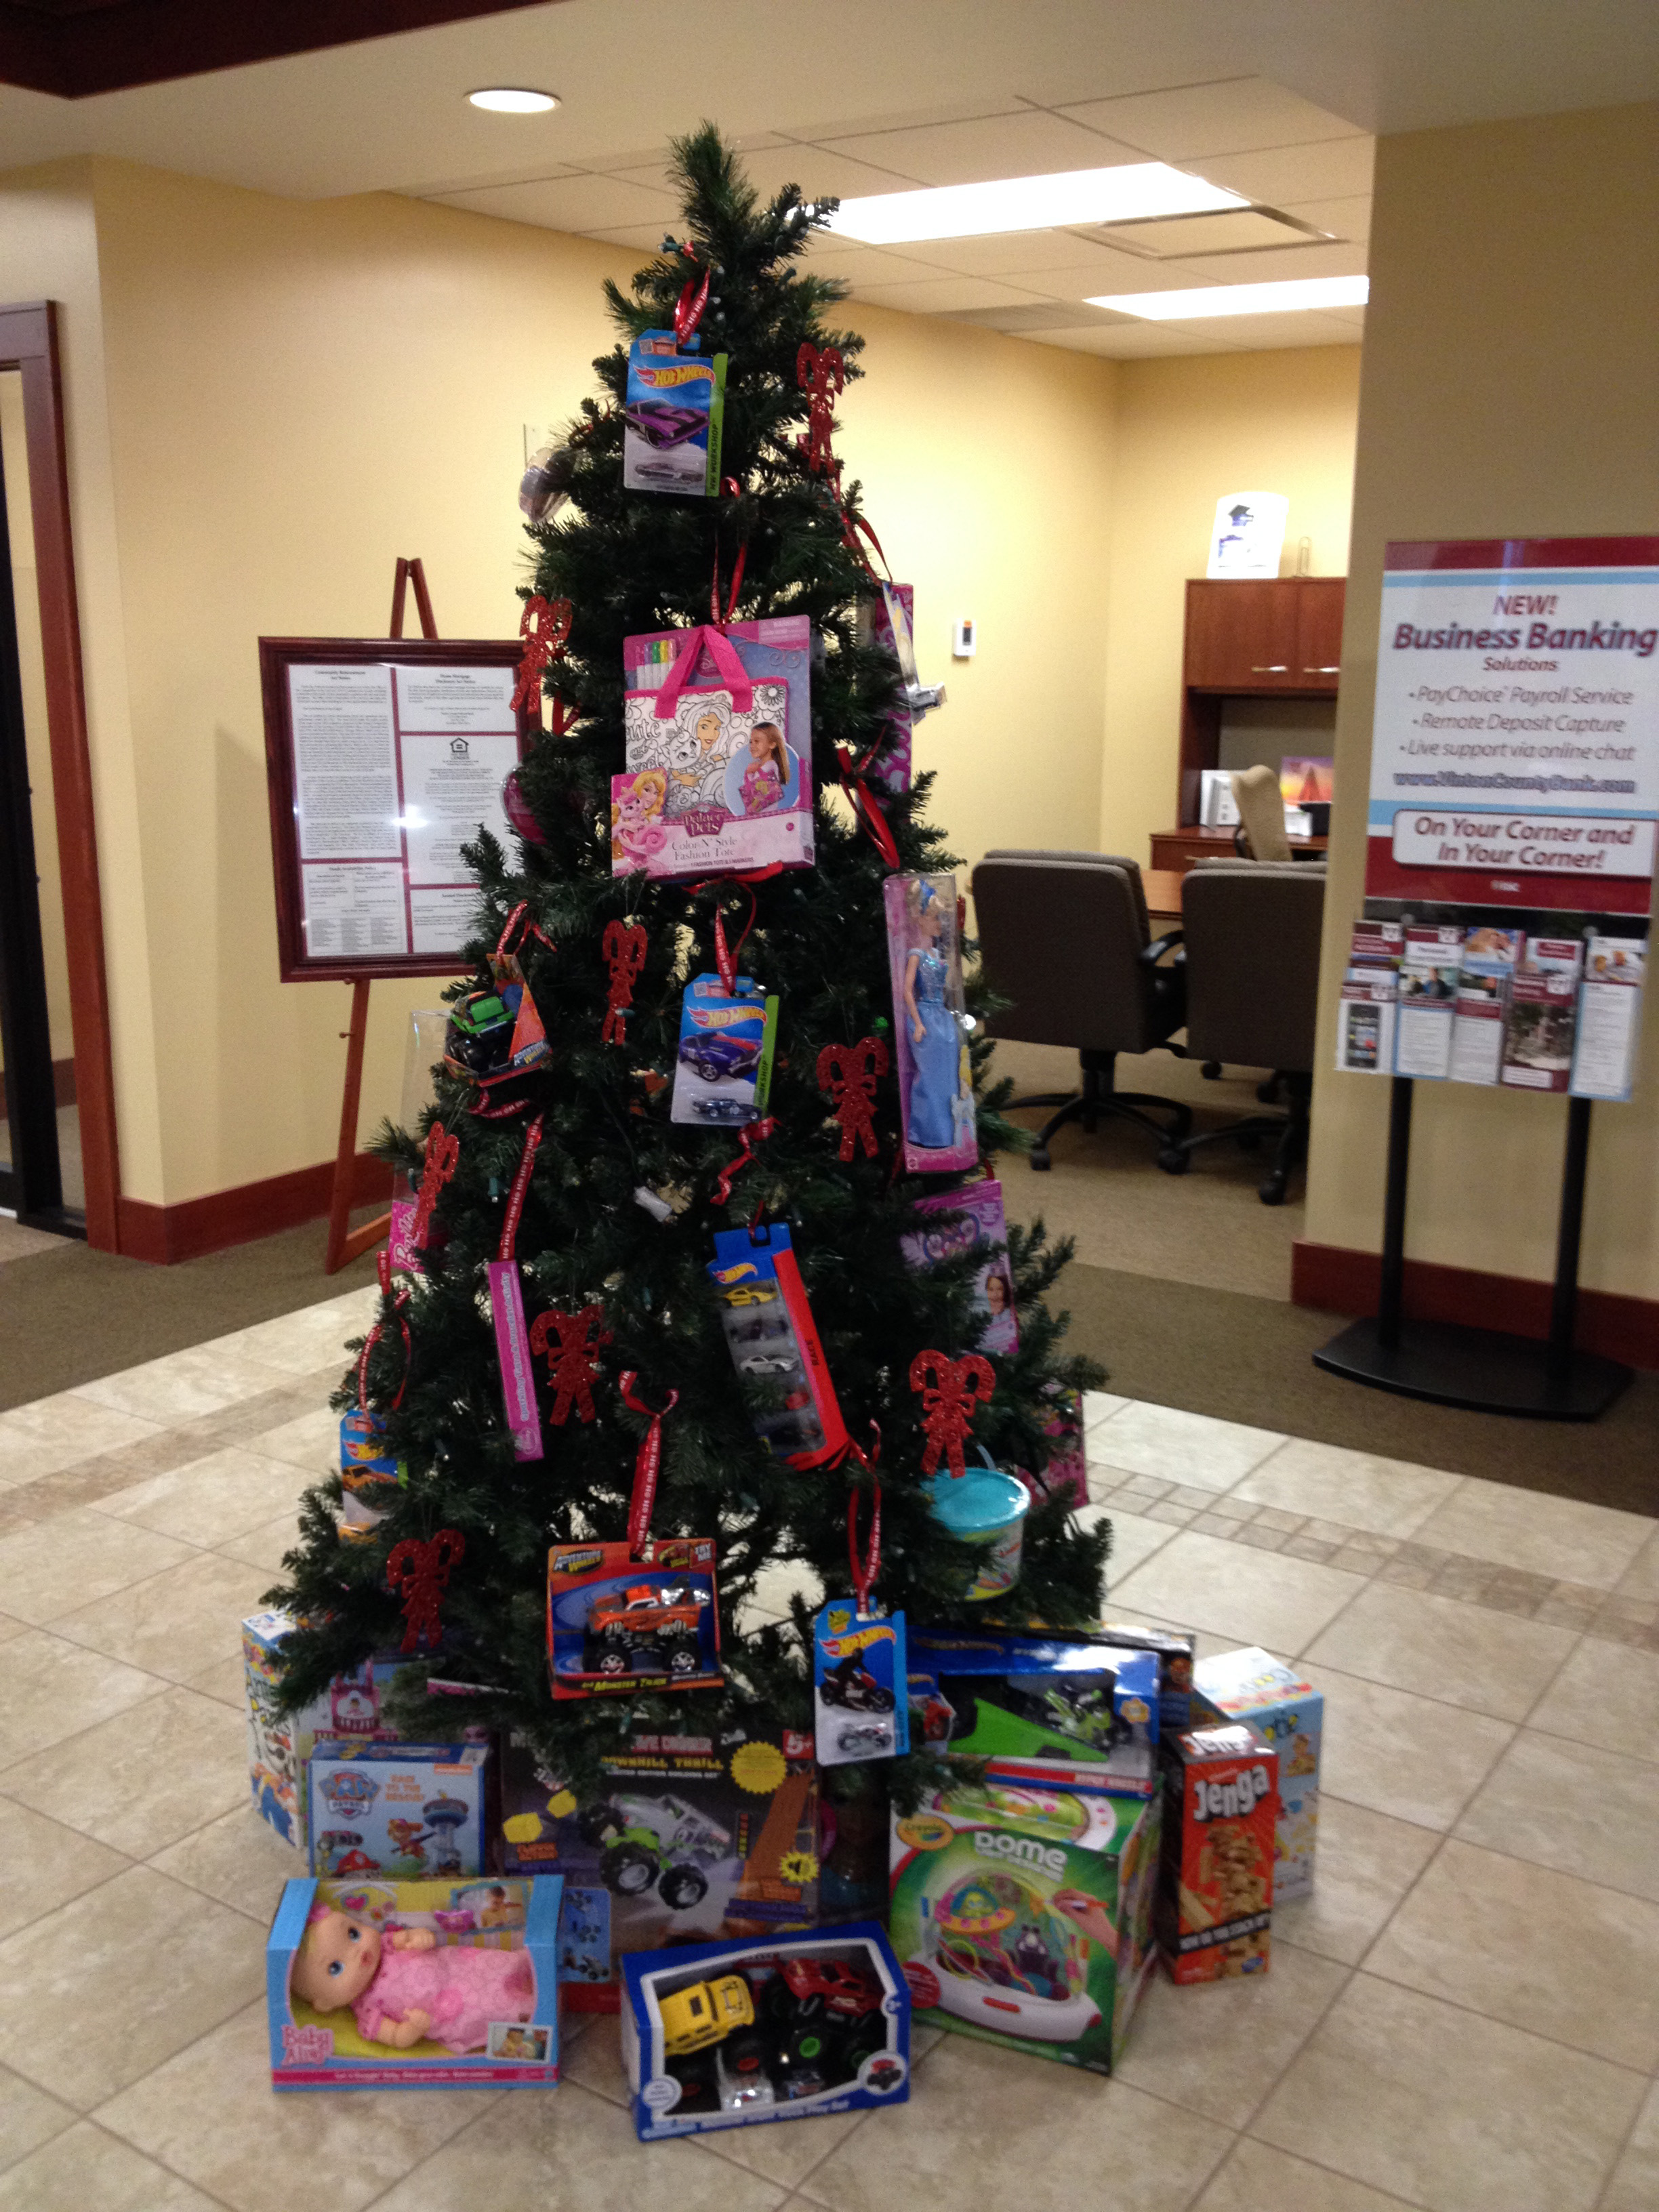 customers can donate toys to hocking county childrens services by bringing an unwrapped toy to the - Toy Donations For Christmas